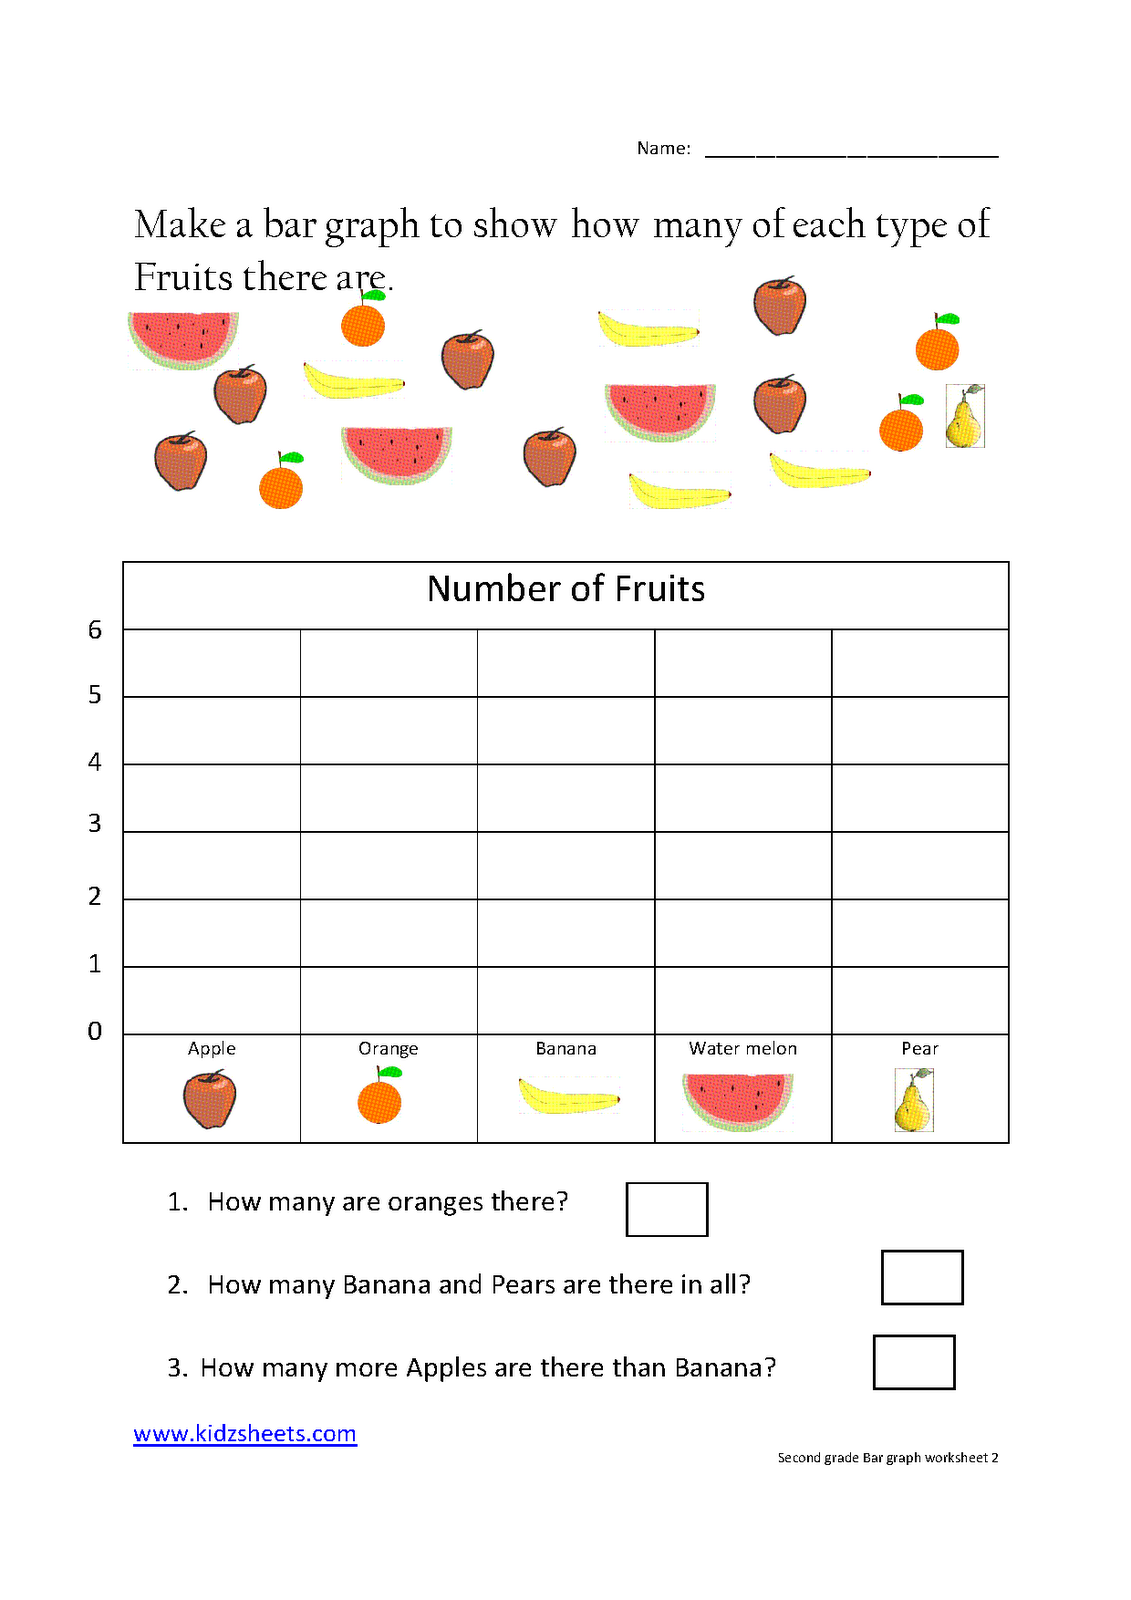 Second Grade Bar Graph Worksheet2